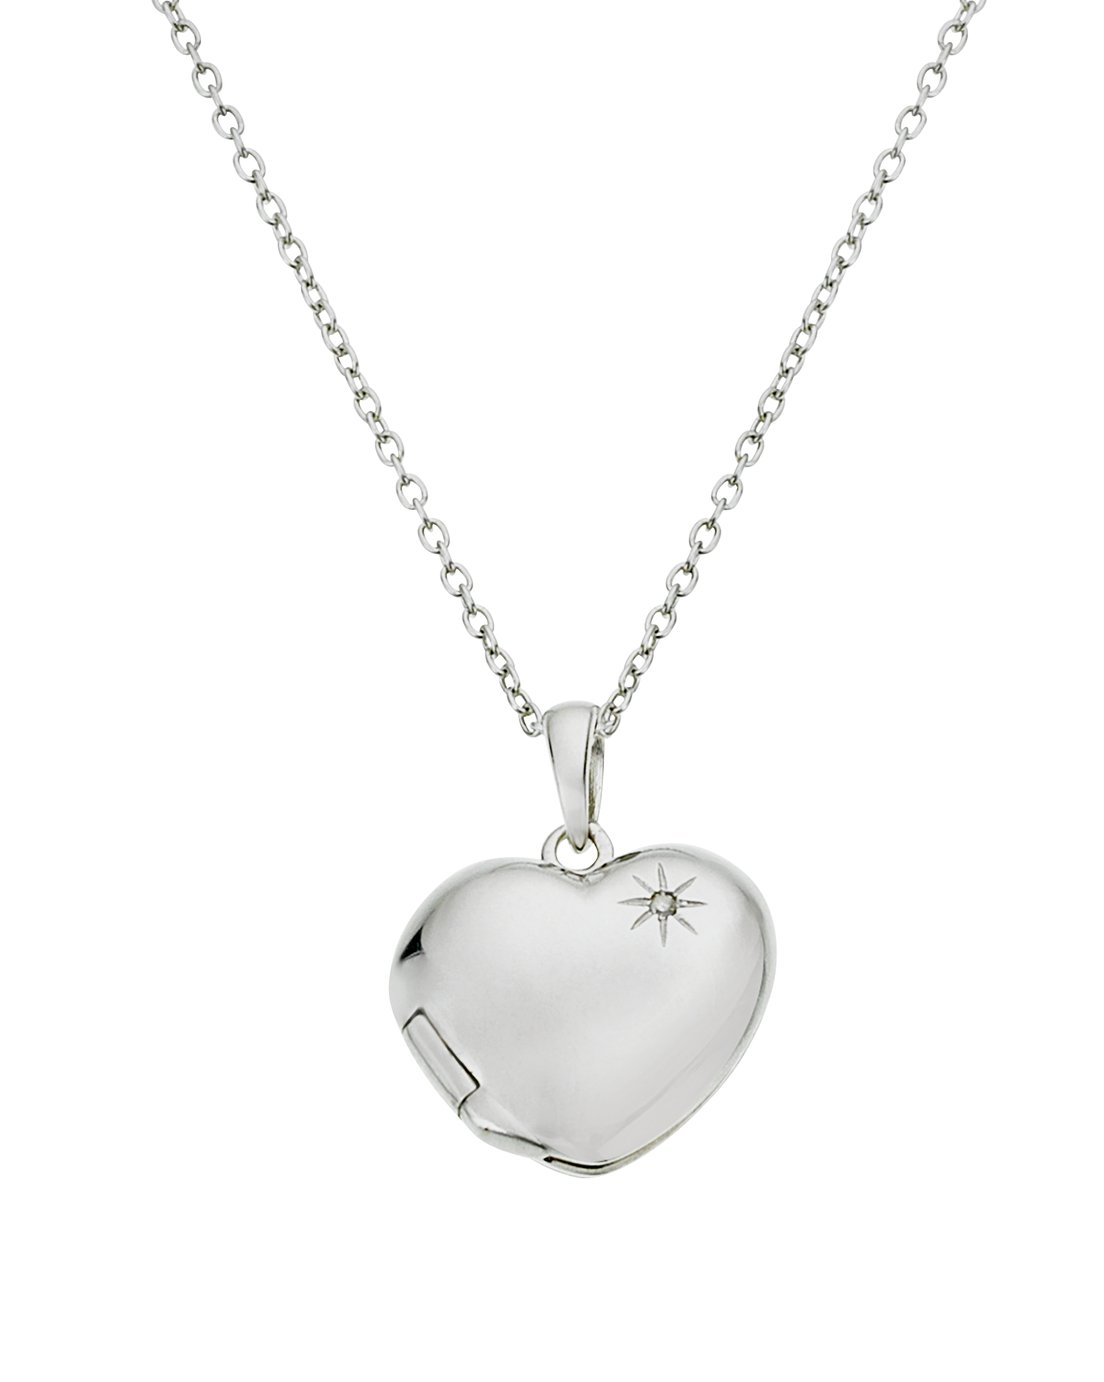 Accents by Hot Diamonds Silver Heart Locket Pendant Necklace